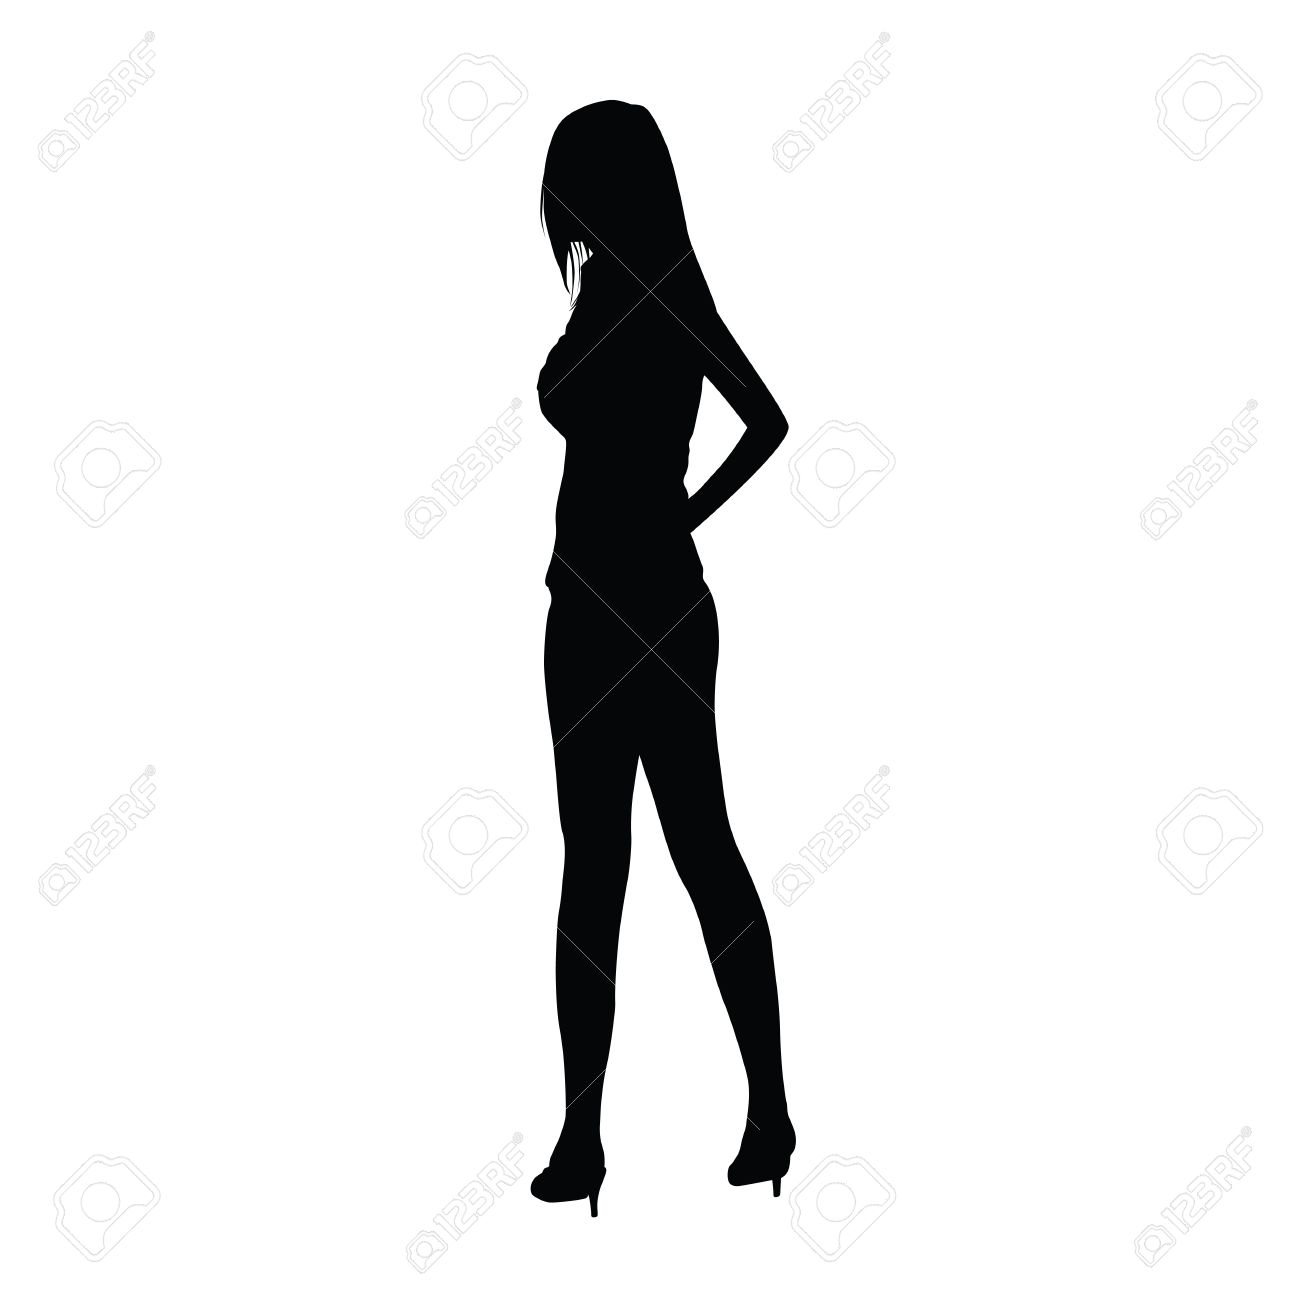 Fashion style Standing Woman silhouette for girls